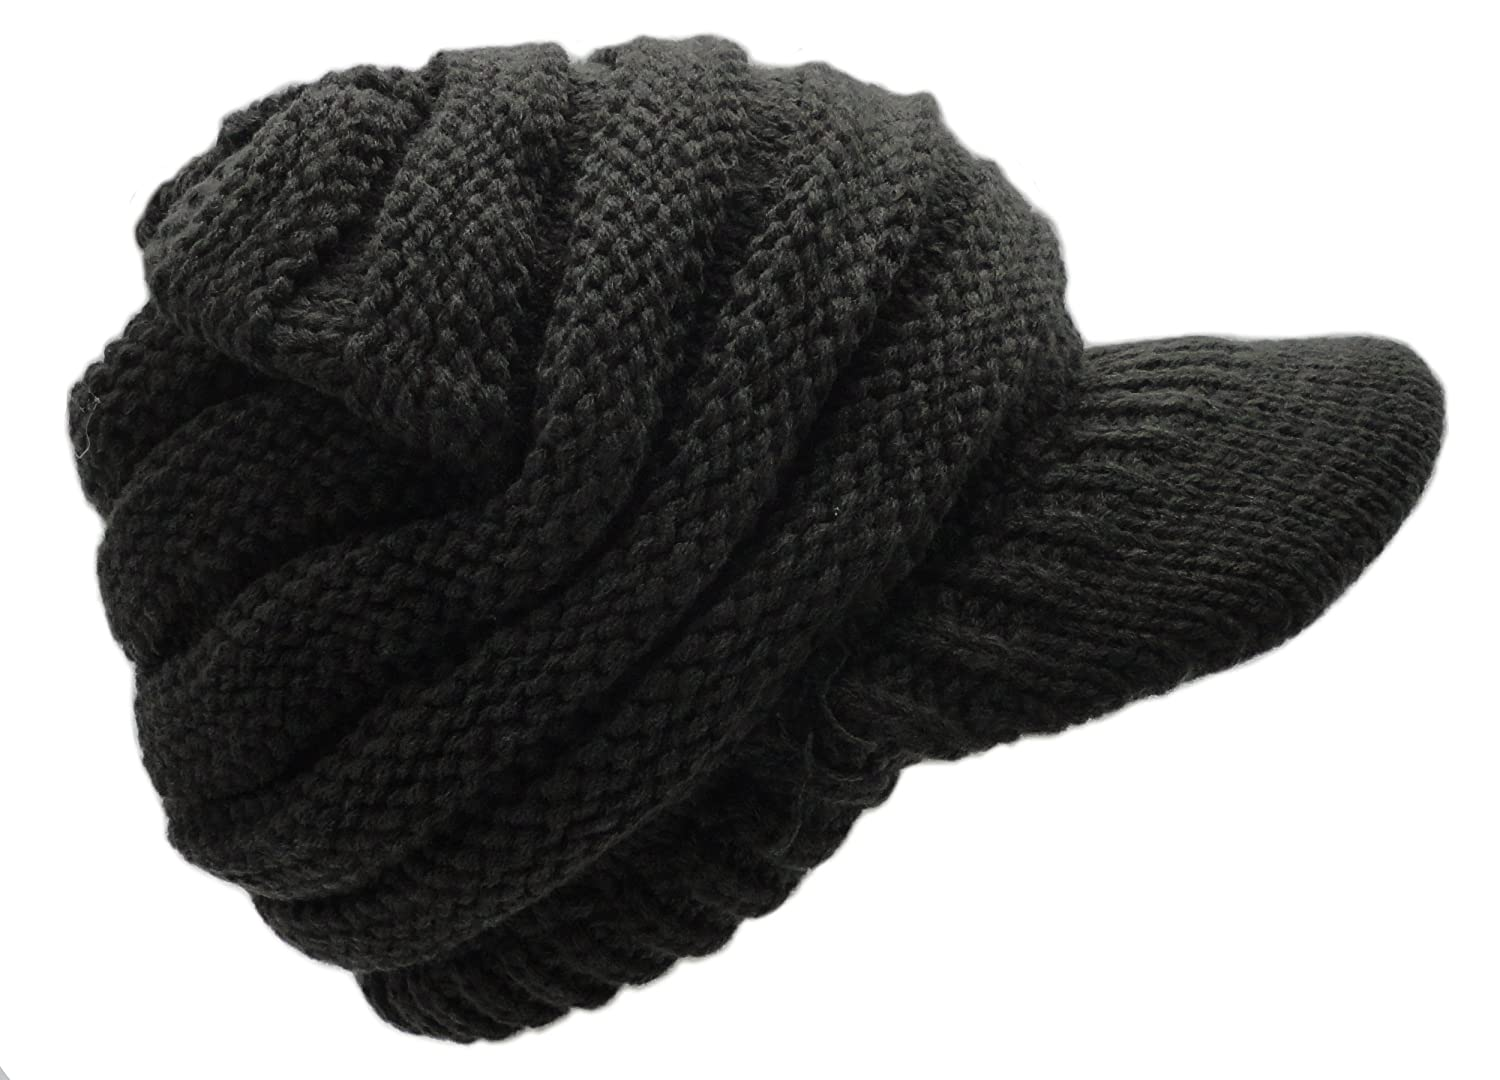 fc0a23ee2c4 ... Newsboy Floral Cable Knitted Hat with Visor Bill Winter Warm Hat for  Women ...